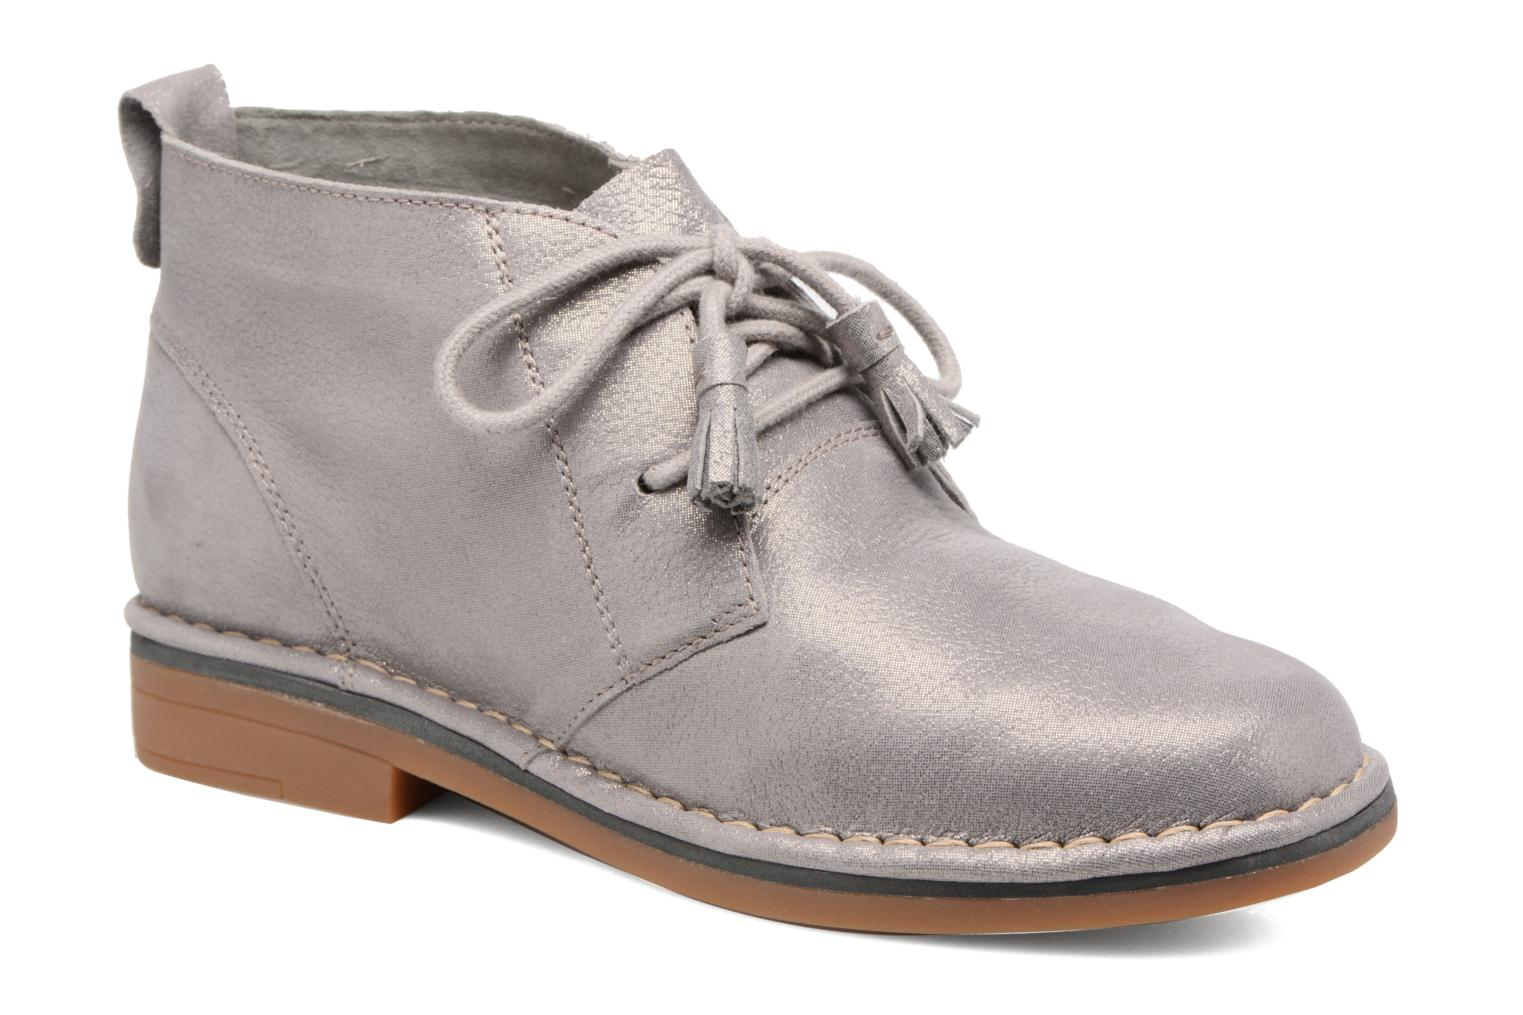 Marques Chaussure femme Hush Puppies femme Cyra Catelyn Gris Brillant